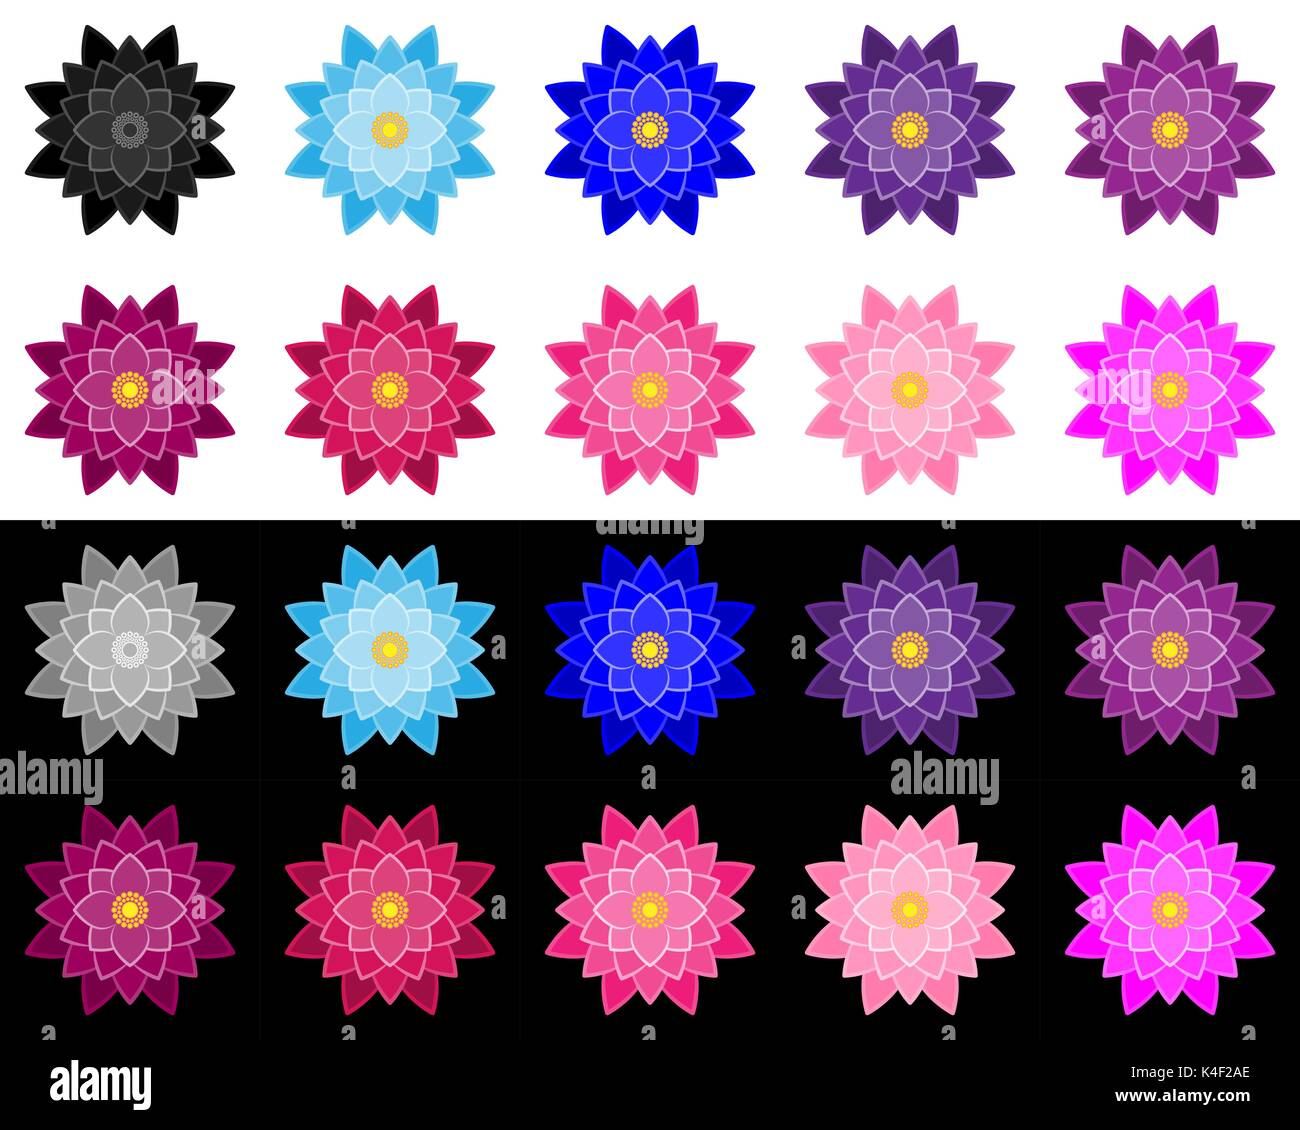 Lotus flower illustration stock photos lotus flower illustration set of lotuses performed a stroke and fills in various colors and hues lotus on izmirmasajfo